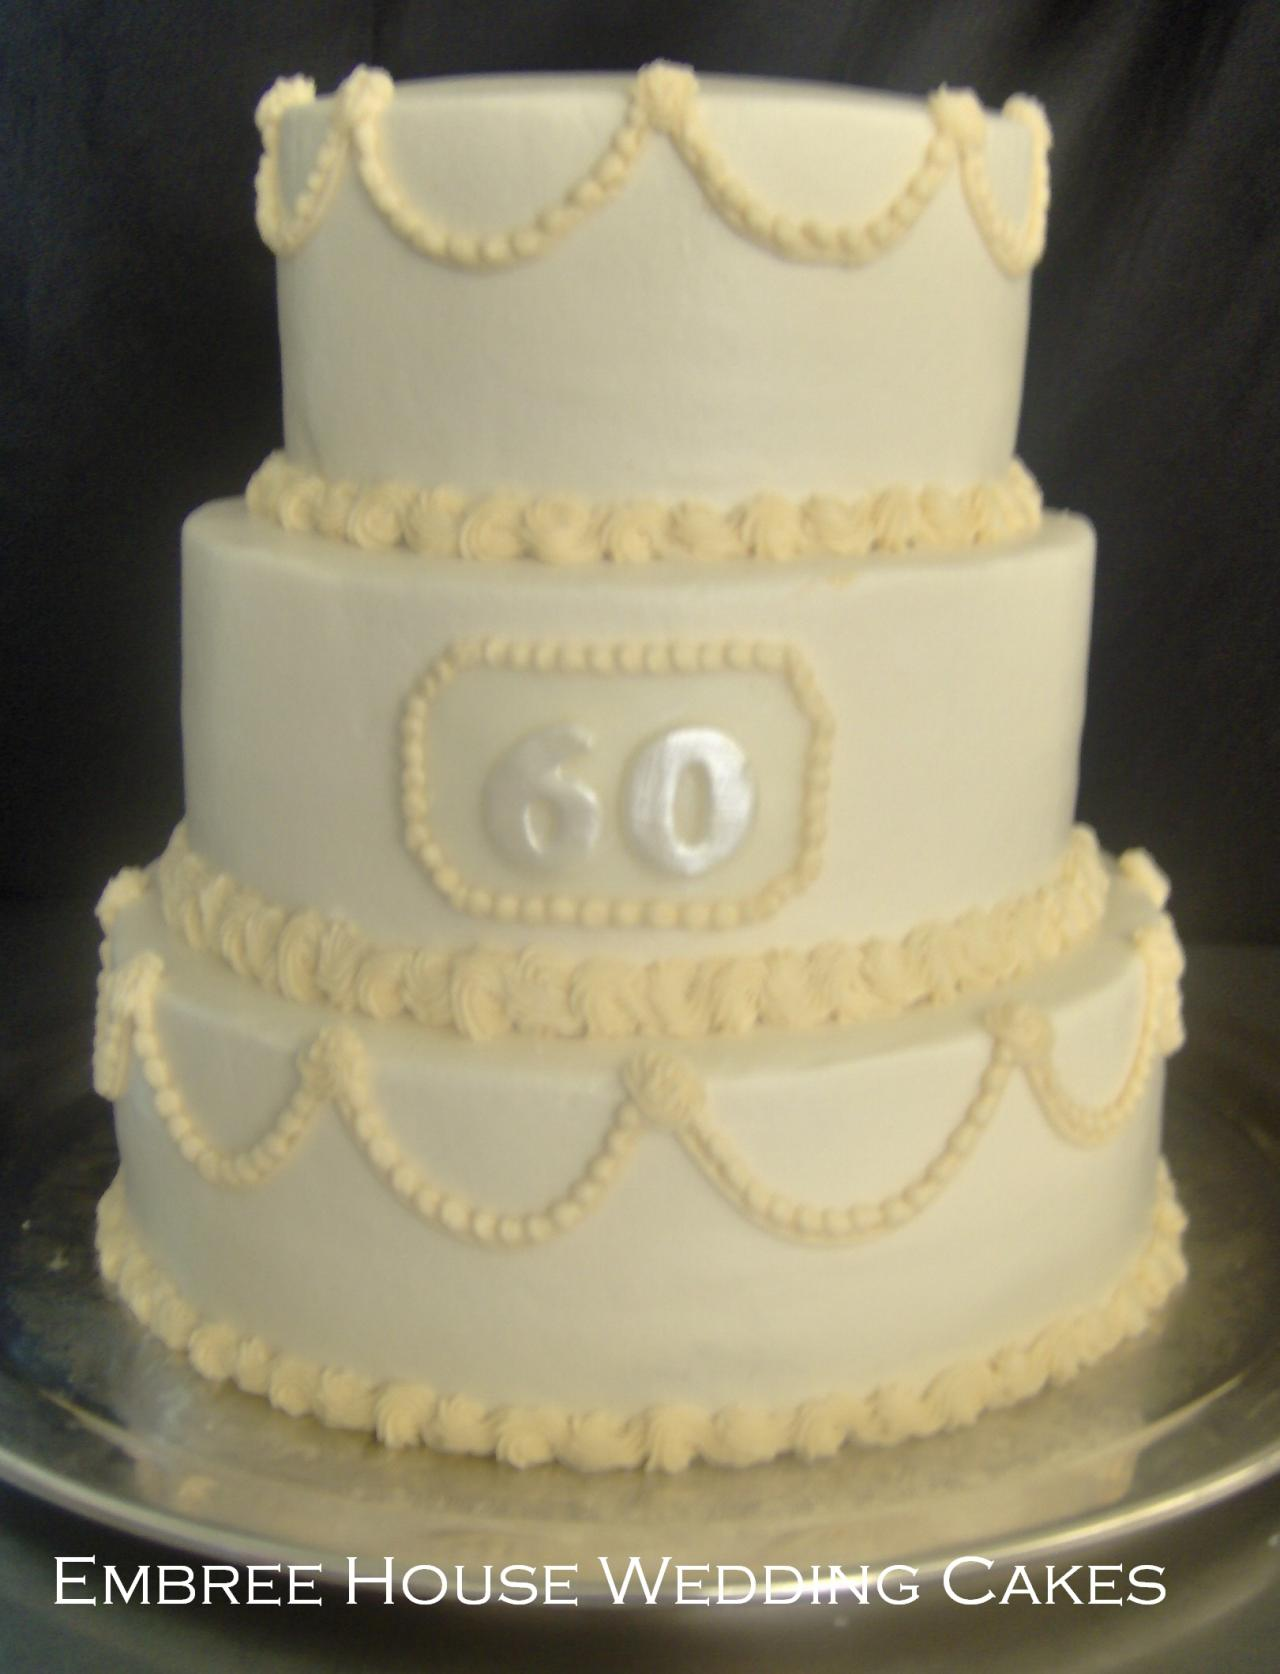 Embree House Wedding Cakes - Specialty Cakes